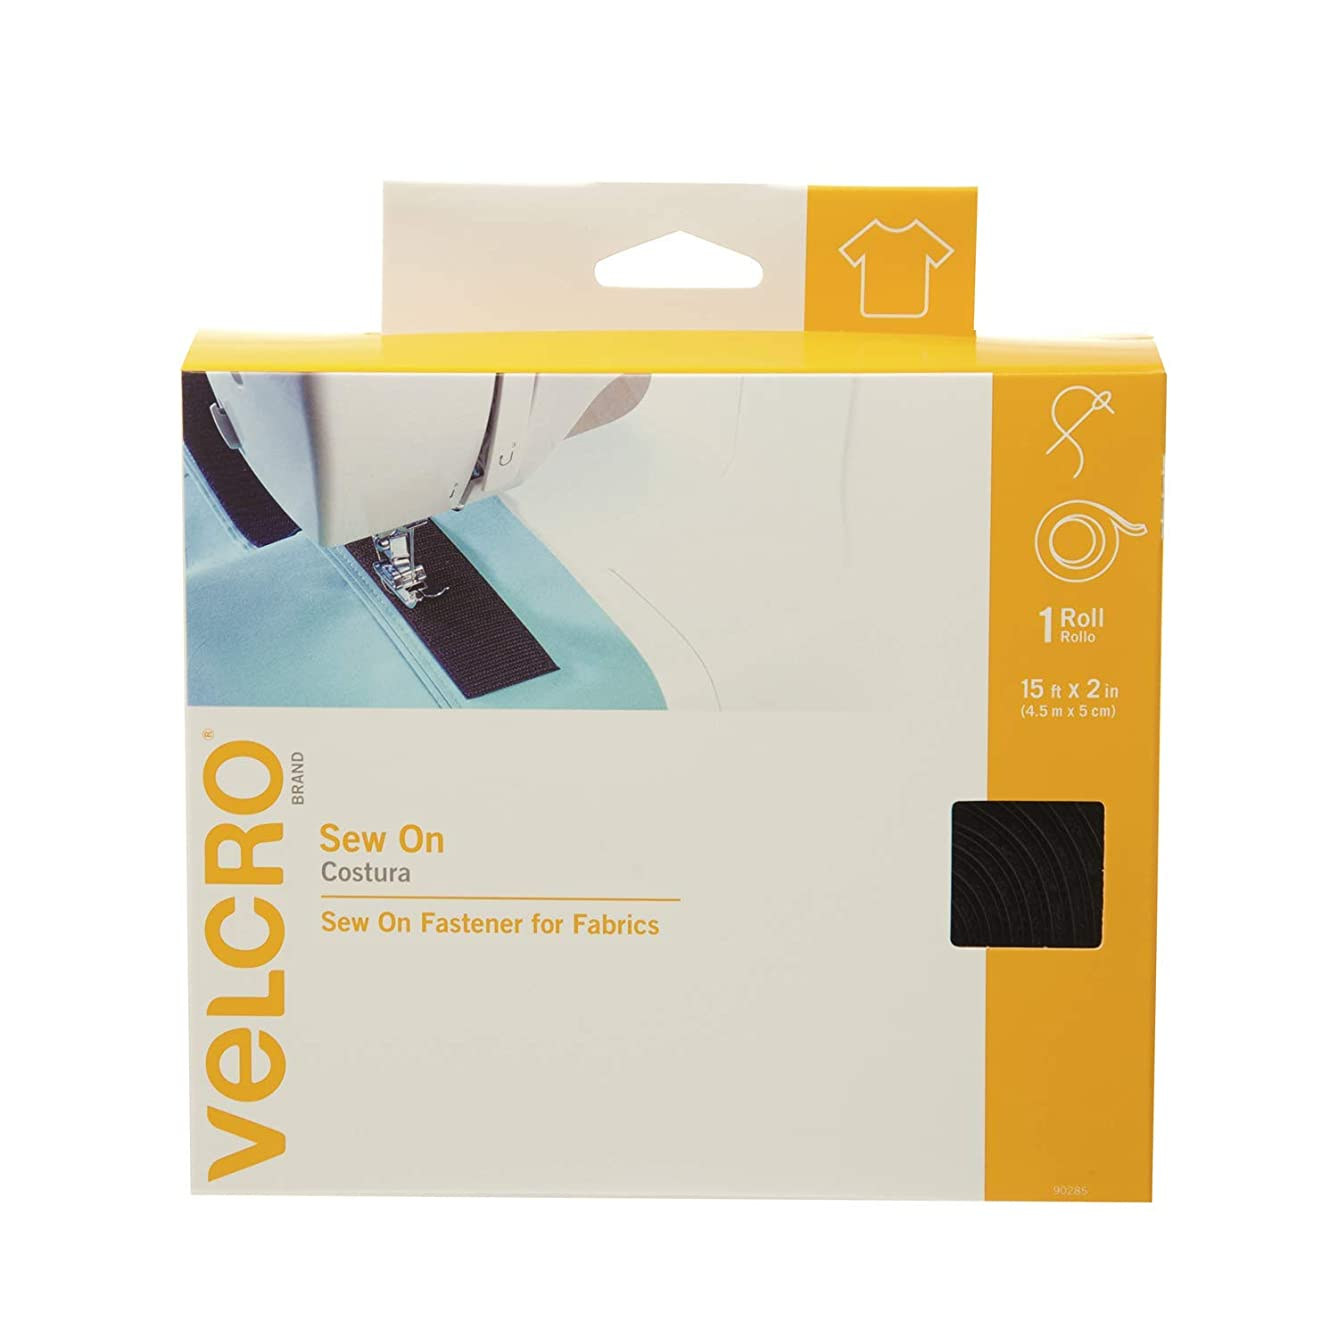 VELCRO Brand For Fabrics | Sew On Fabric Tape for Alterations and Hemming | No Ironing or Gluing | Ideal Substitute for Snaps and Buttons | Tape, 15ft x 2in, Black